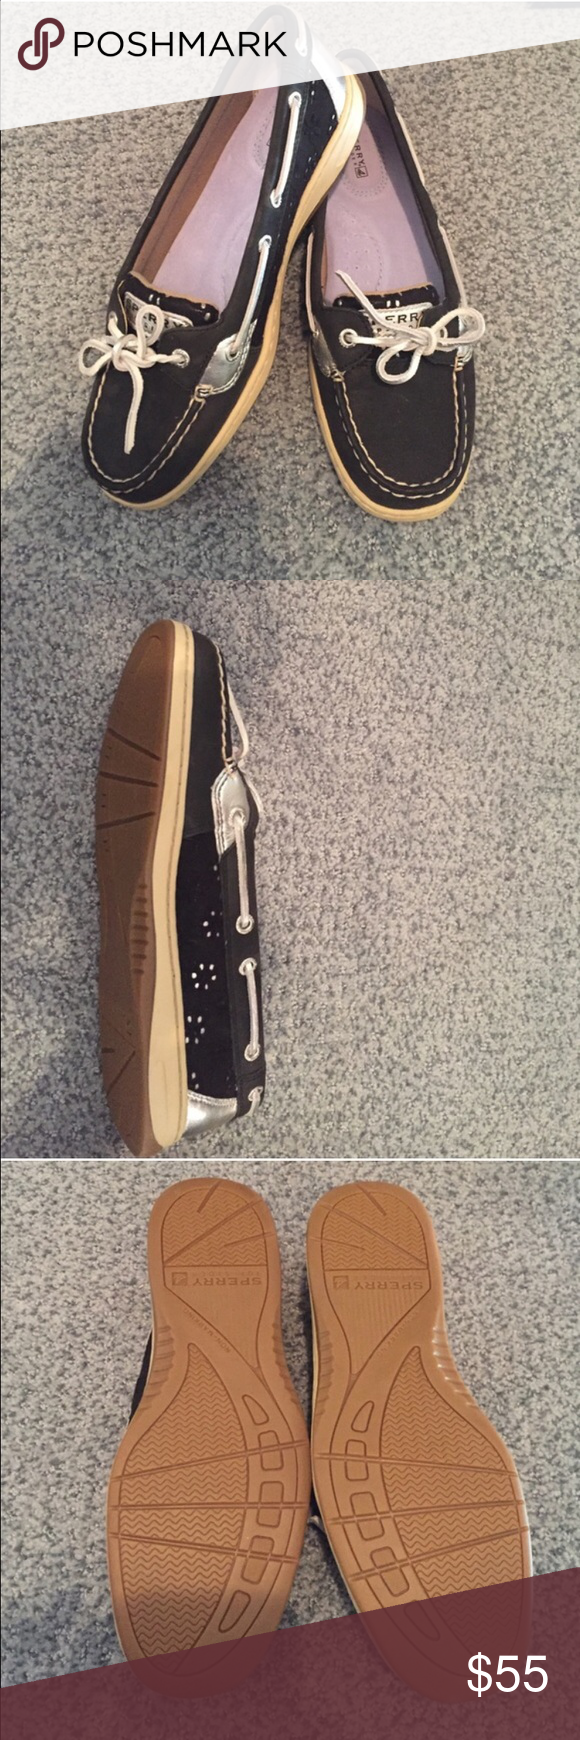 Black and Silver Sperrys Brand new and never worn black and silver sperry boat shoes Sperry Top-Sider Shoes